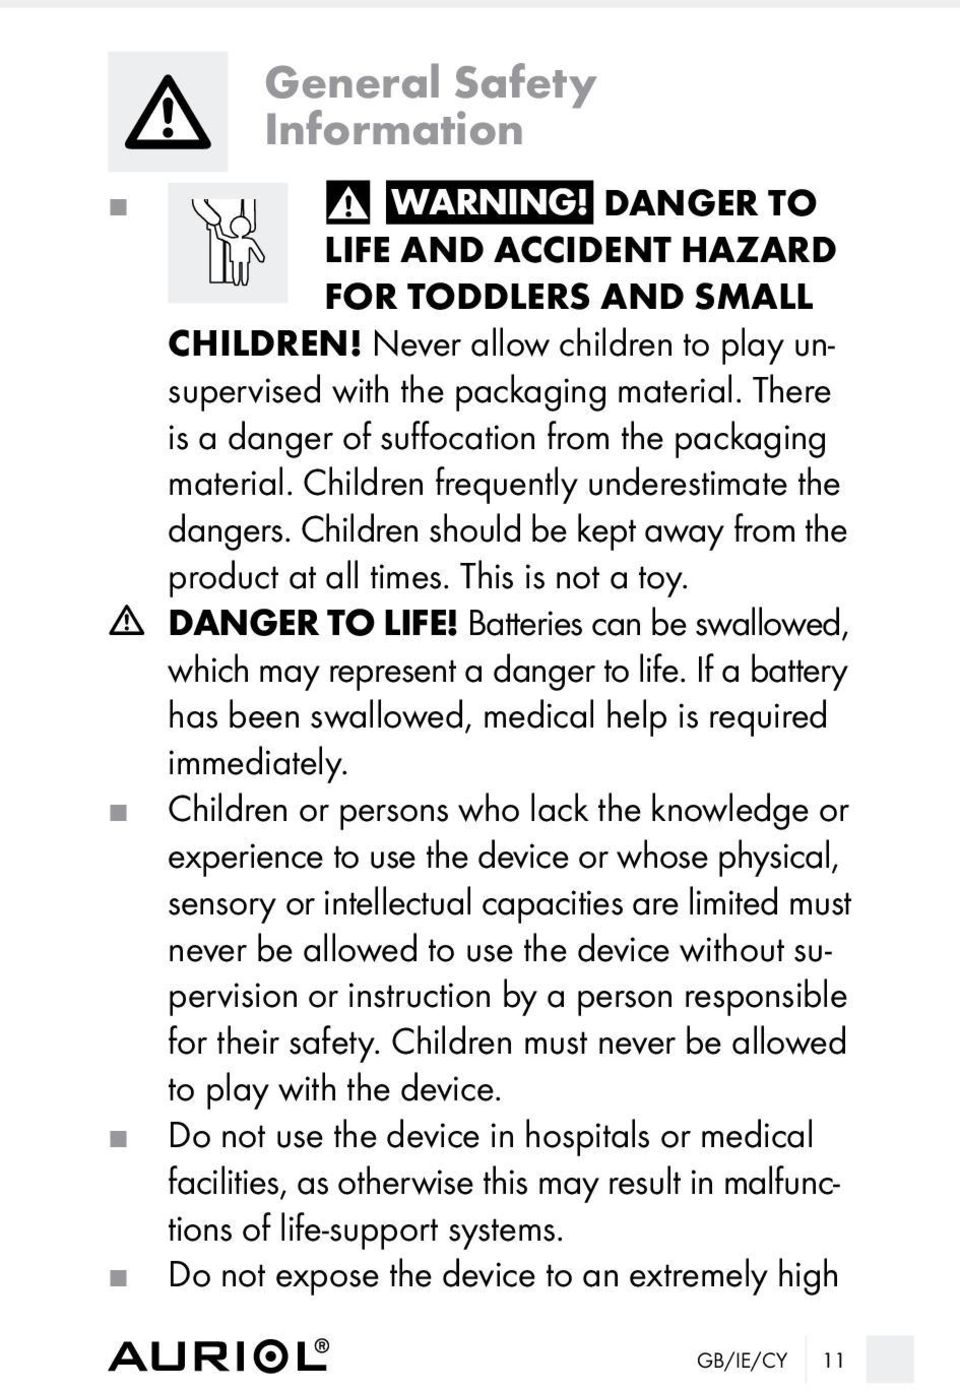 m DANGER TO LIFE! Batteries can be swallowed, which may represent a danger to life. If a battery has been swallowed, medical help is required immediately.